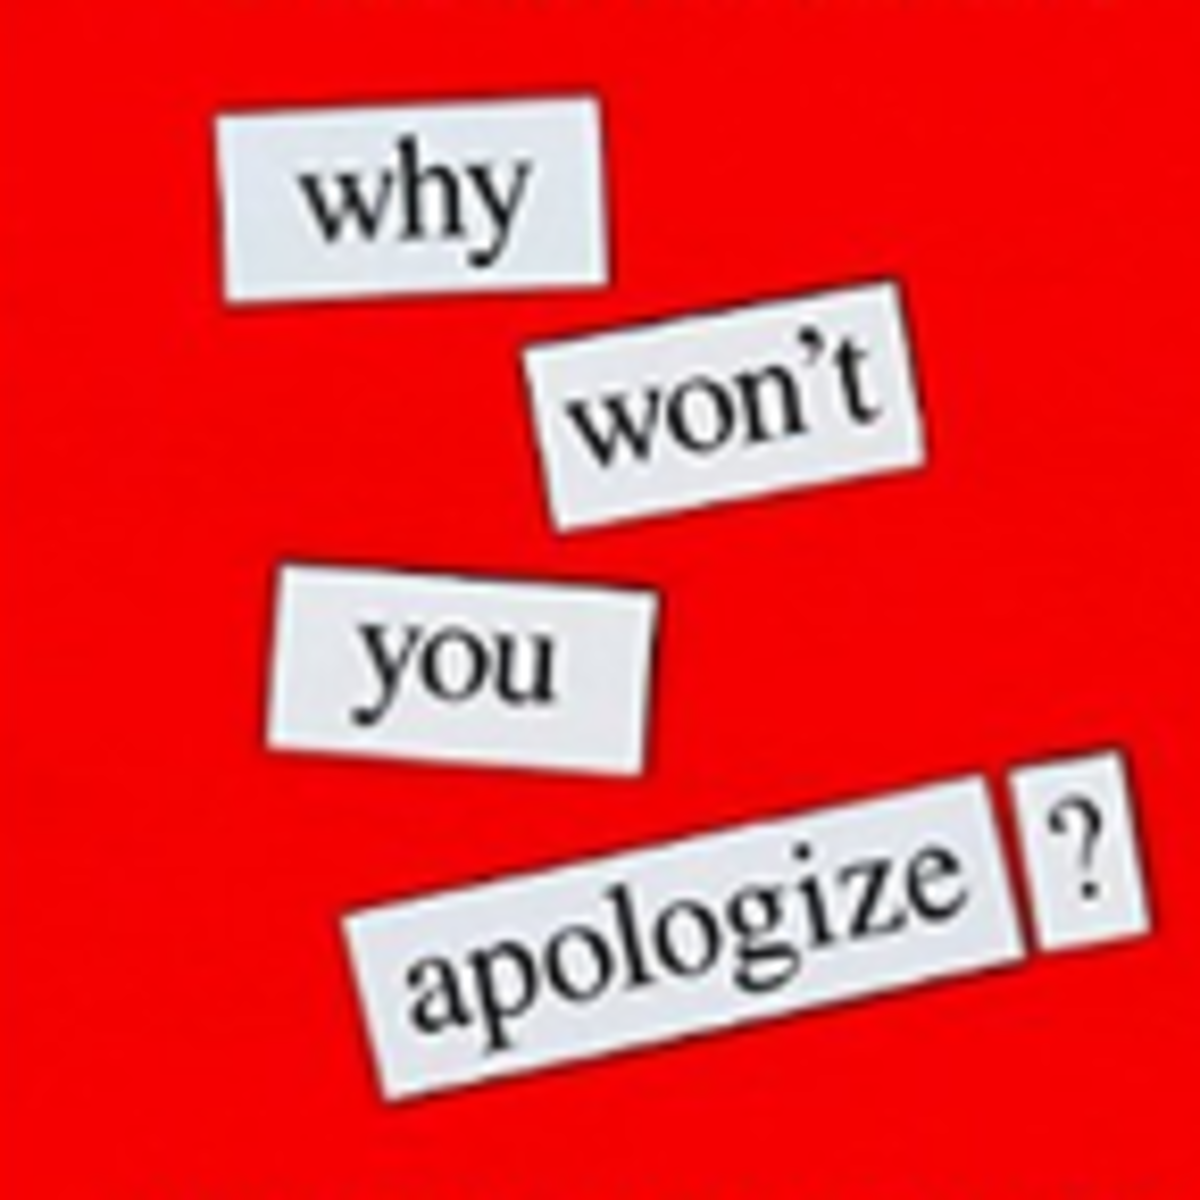 Why That Person Who Hurt You Will Never Apologize